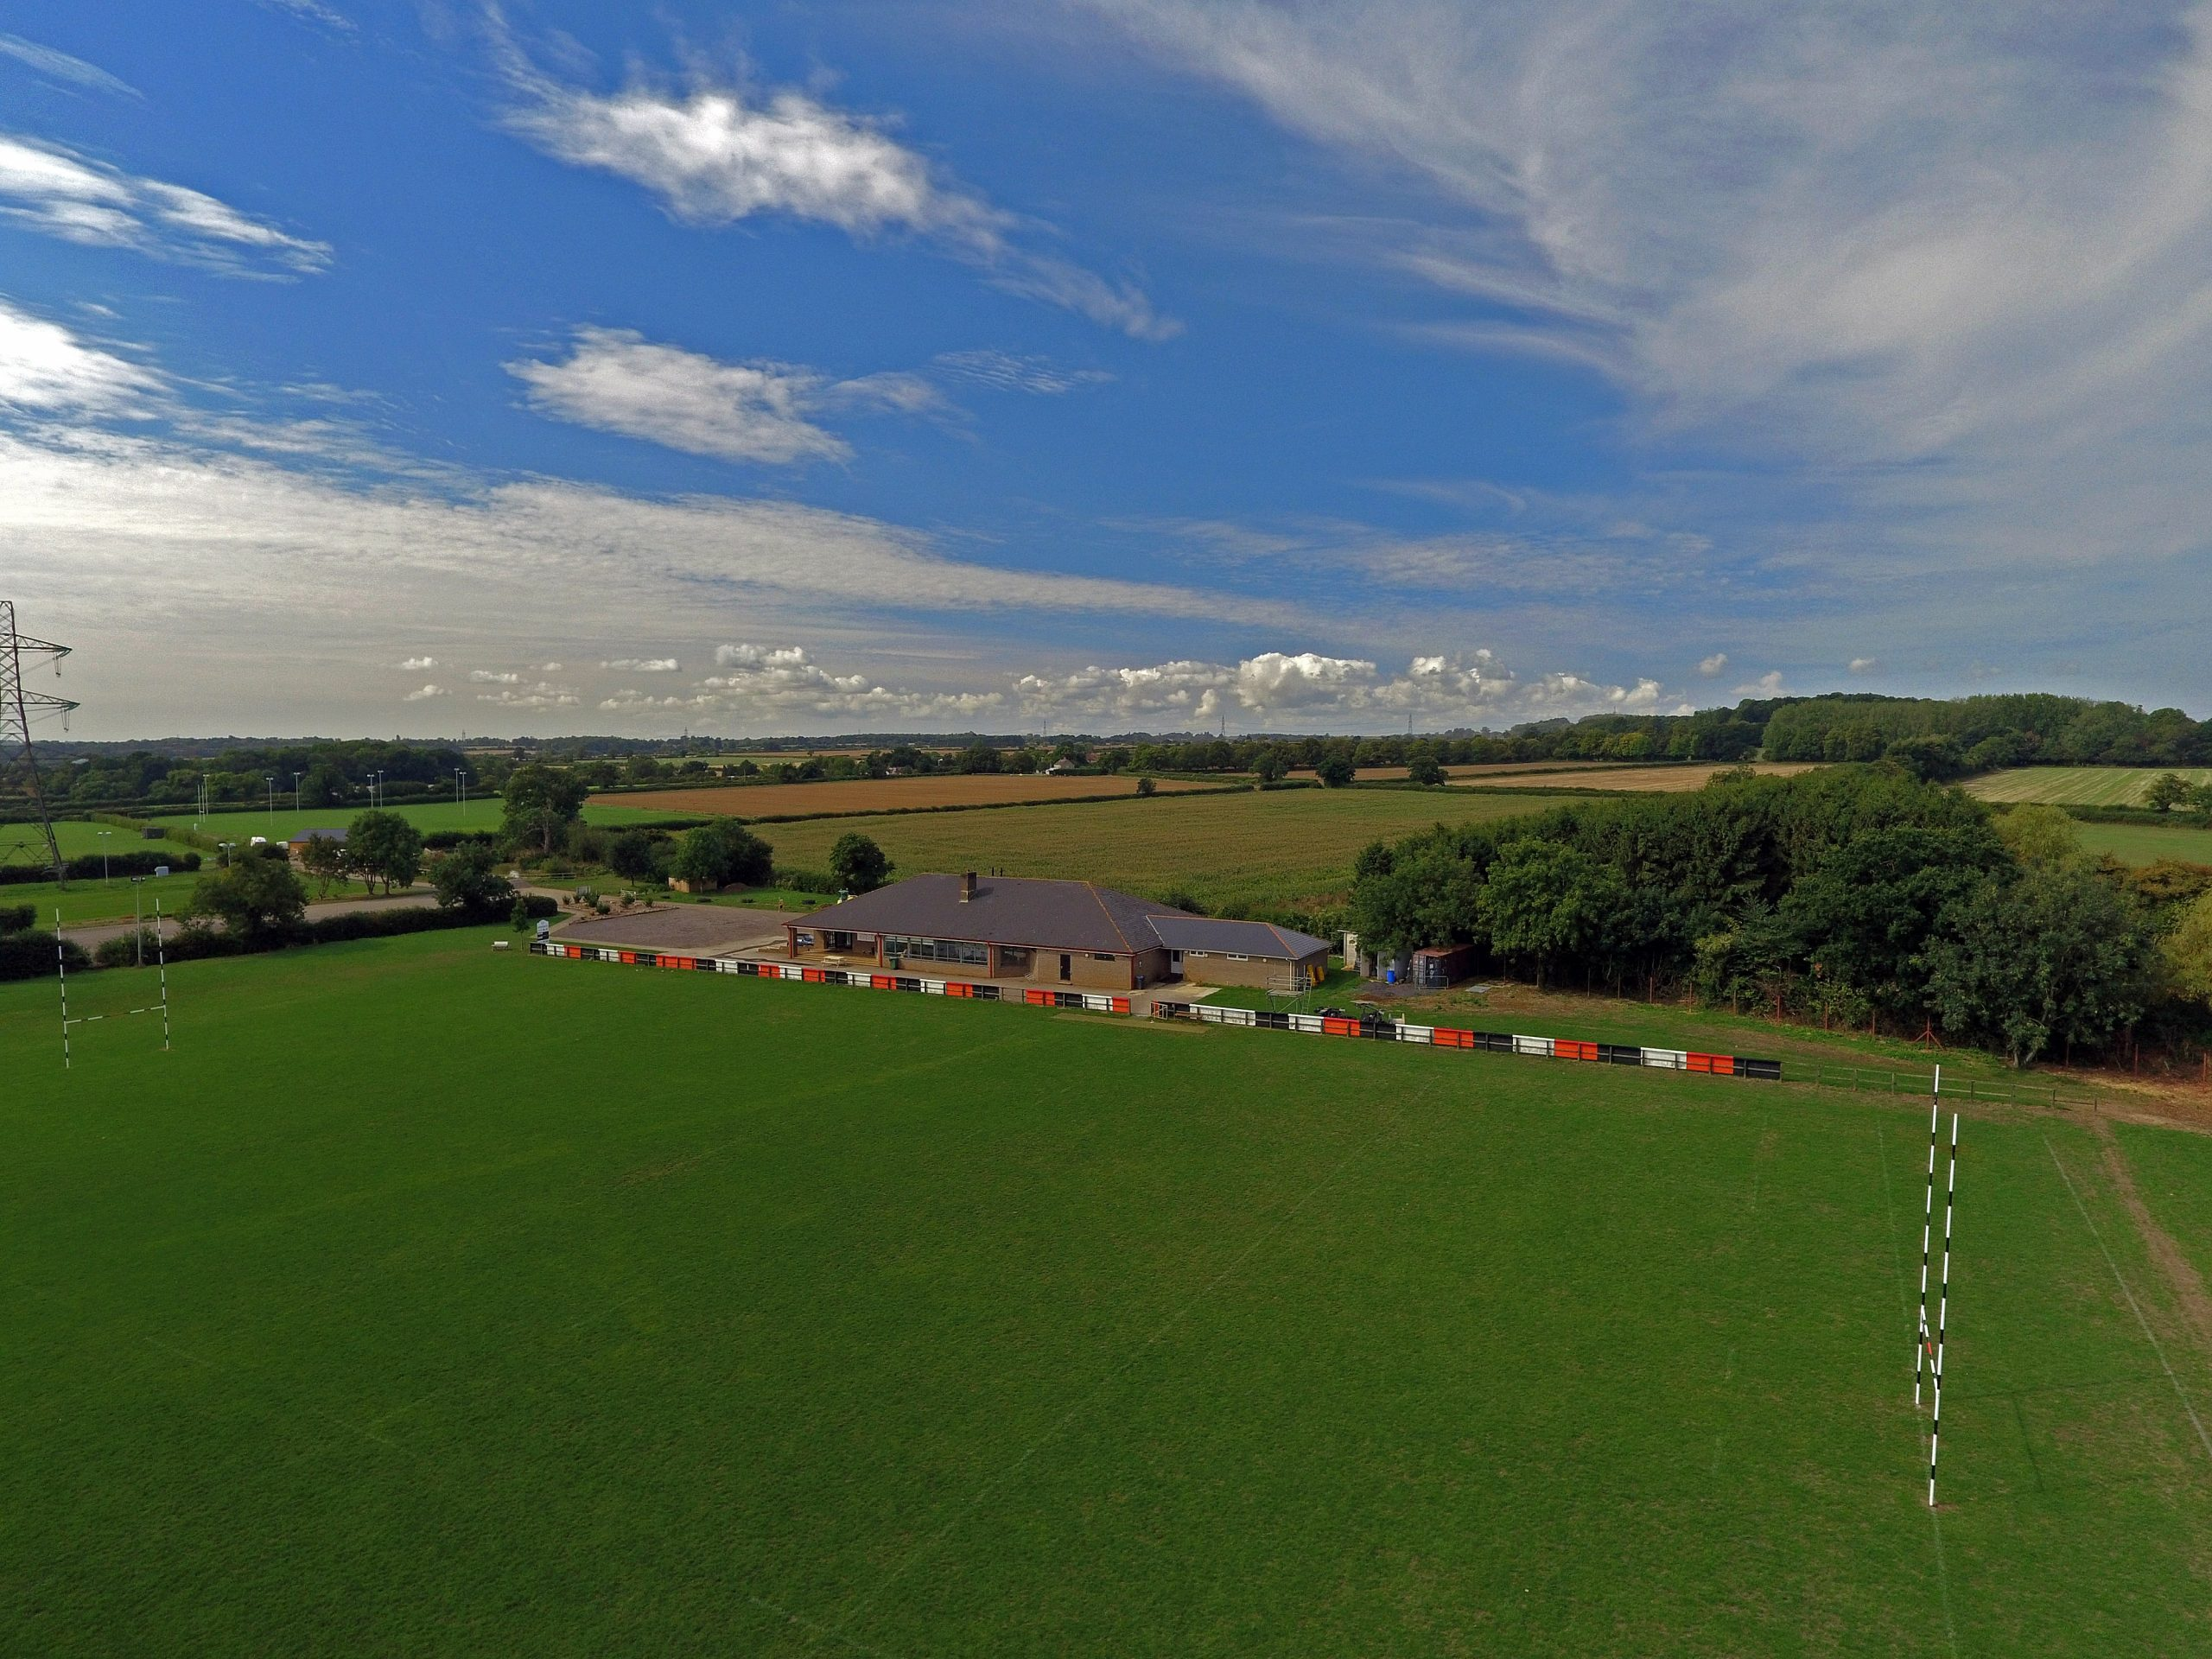 Hire Drone Pilots in UK for Aerial Activities like Photography, Surveys, Filming & Videography